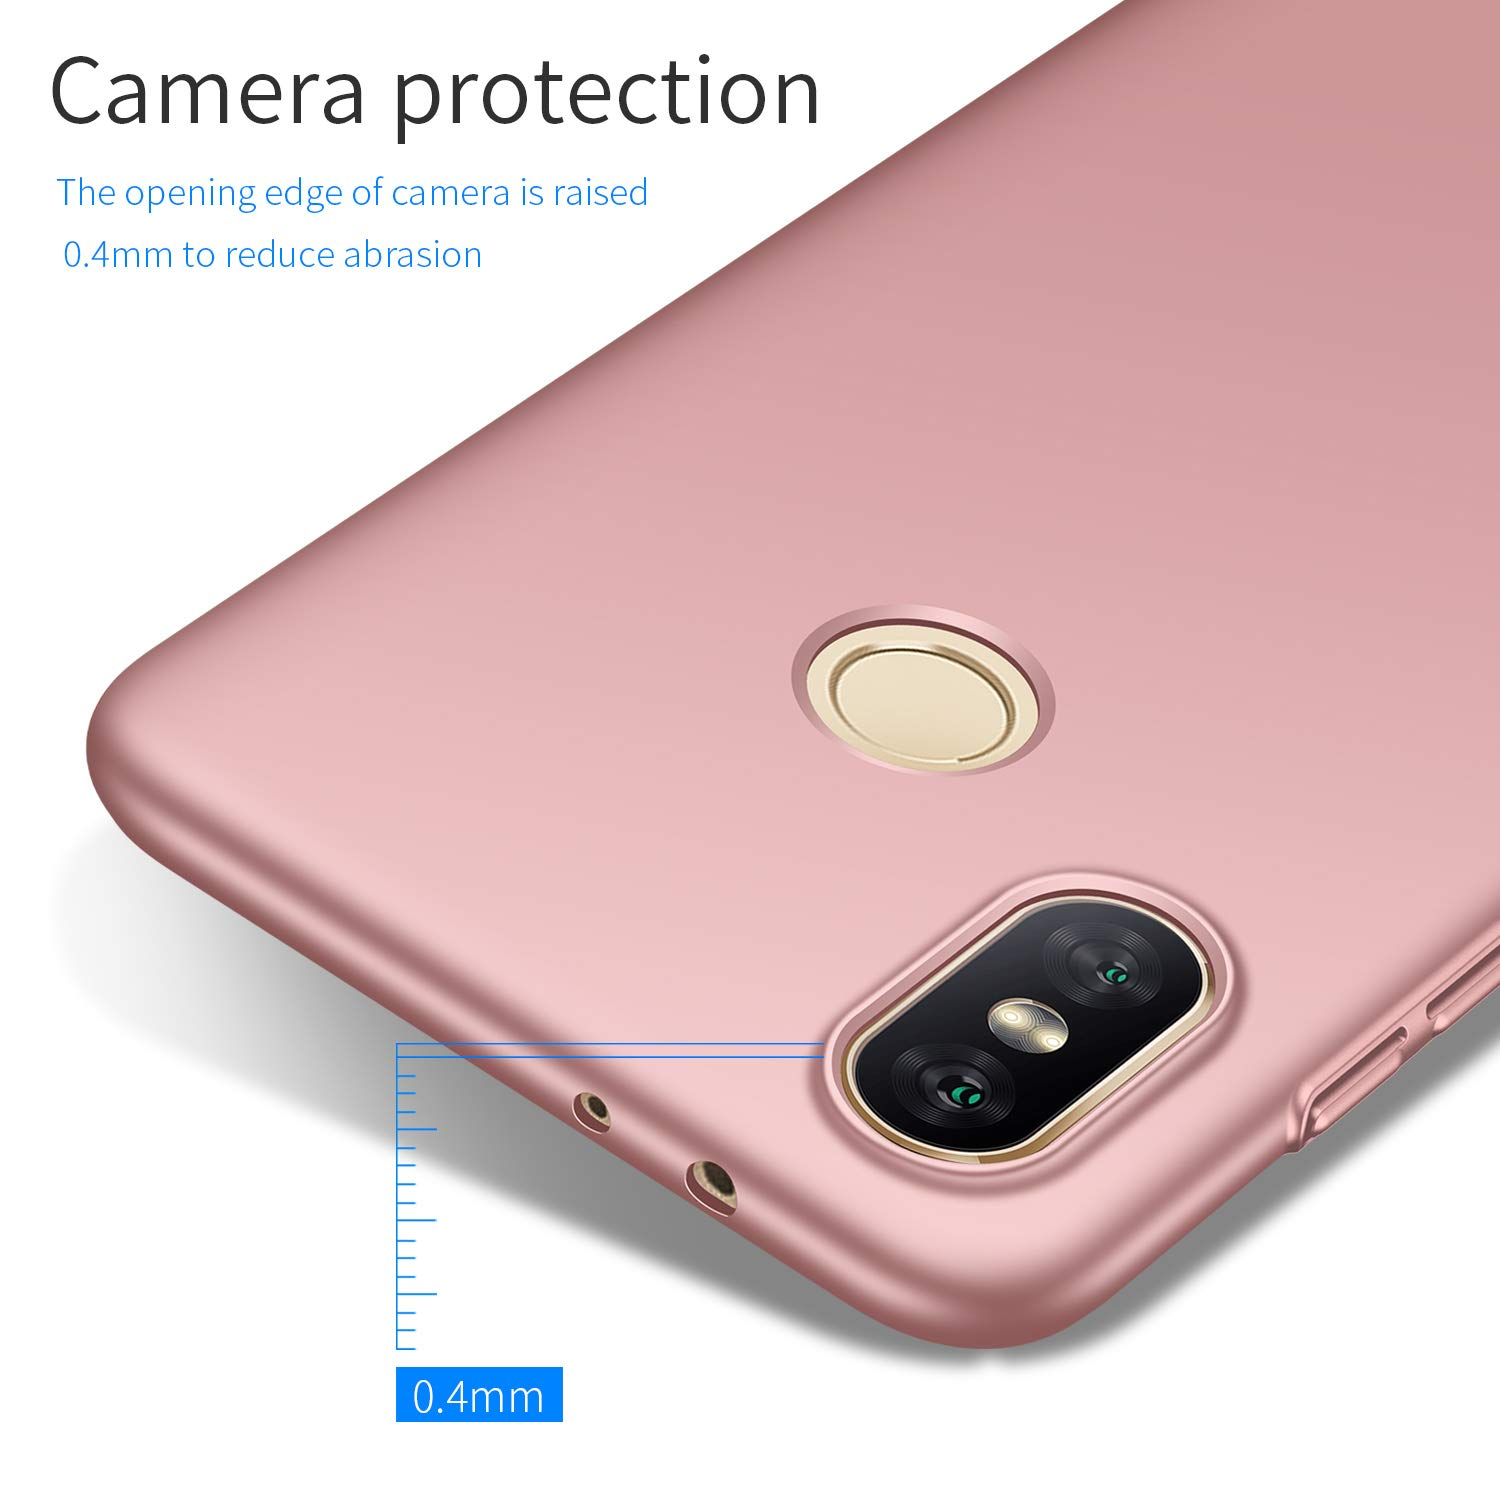 Avalri Xiaomi Mi A2 Case, Ultra Thin Anti-Fingerprint and Minimalist Hard PC Cover for Xiaomi Mi A2 / 6X (Silky Rose Gold)